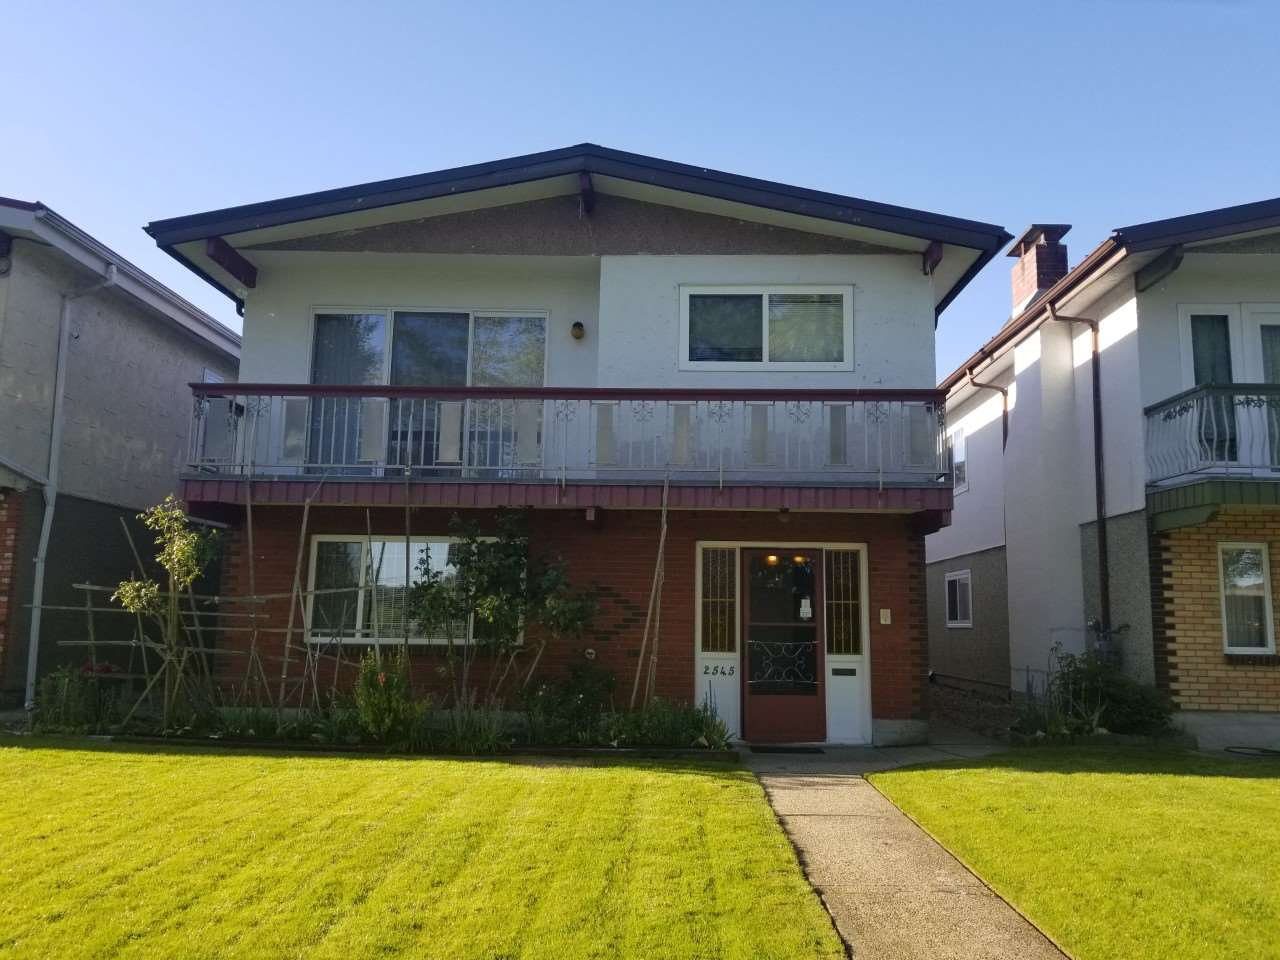 Main Photo: 2545 E 43RD Avenue in Vancouver: Killarney VE House for sale (Vancouver East)  : MLS®# R2369357